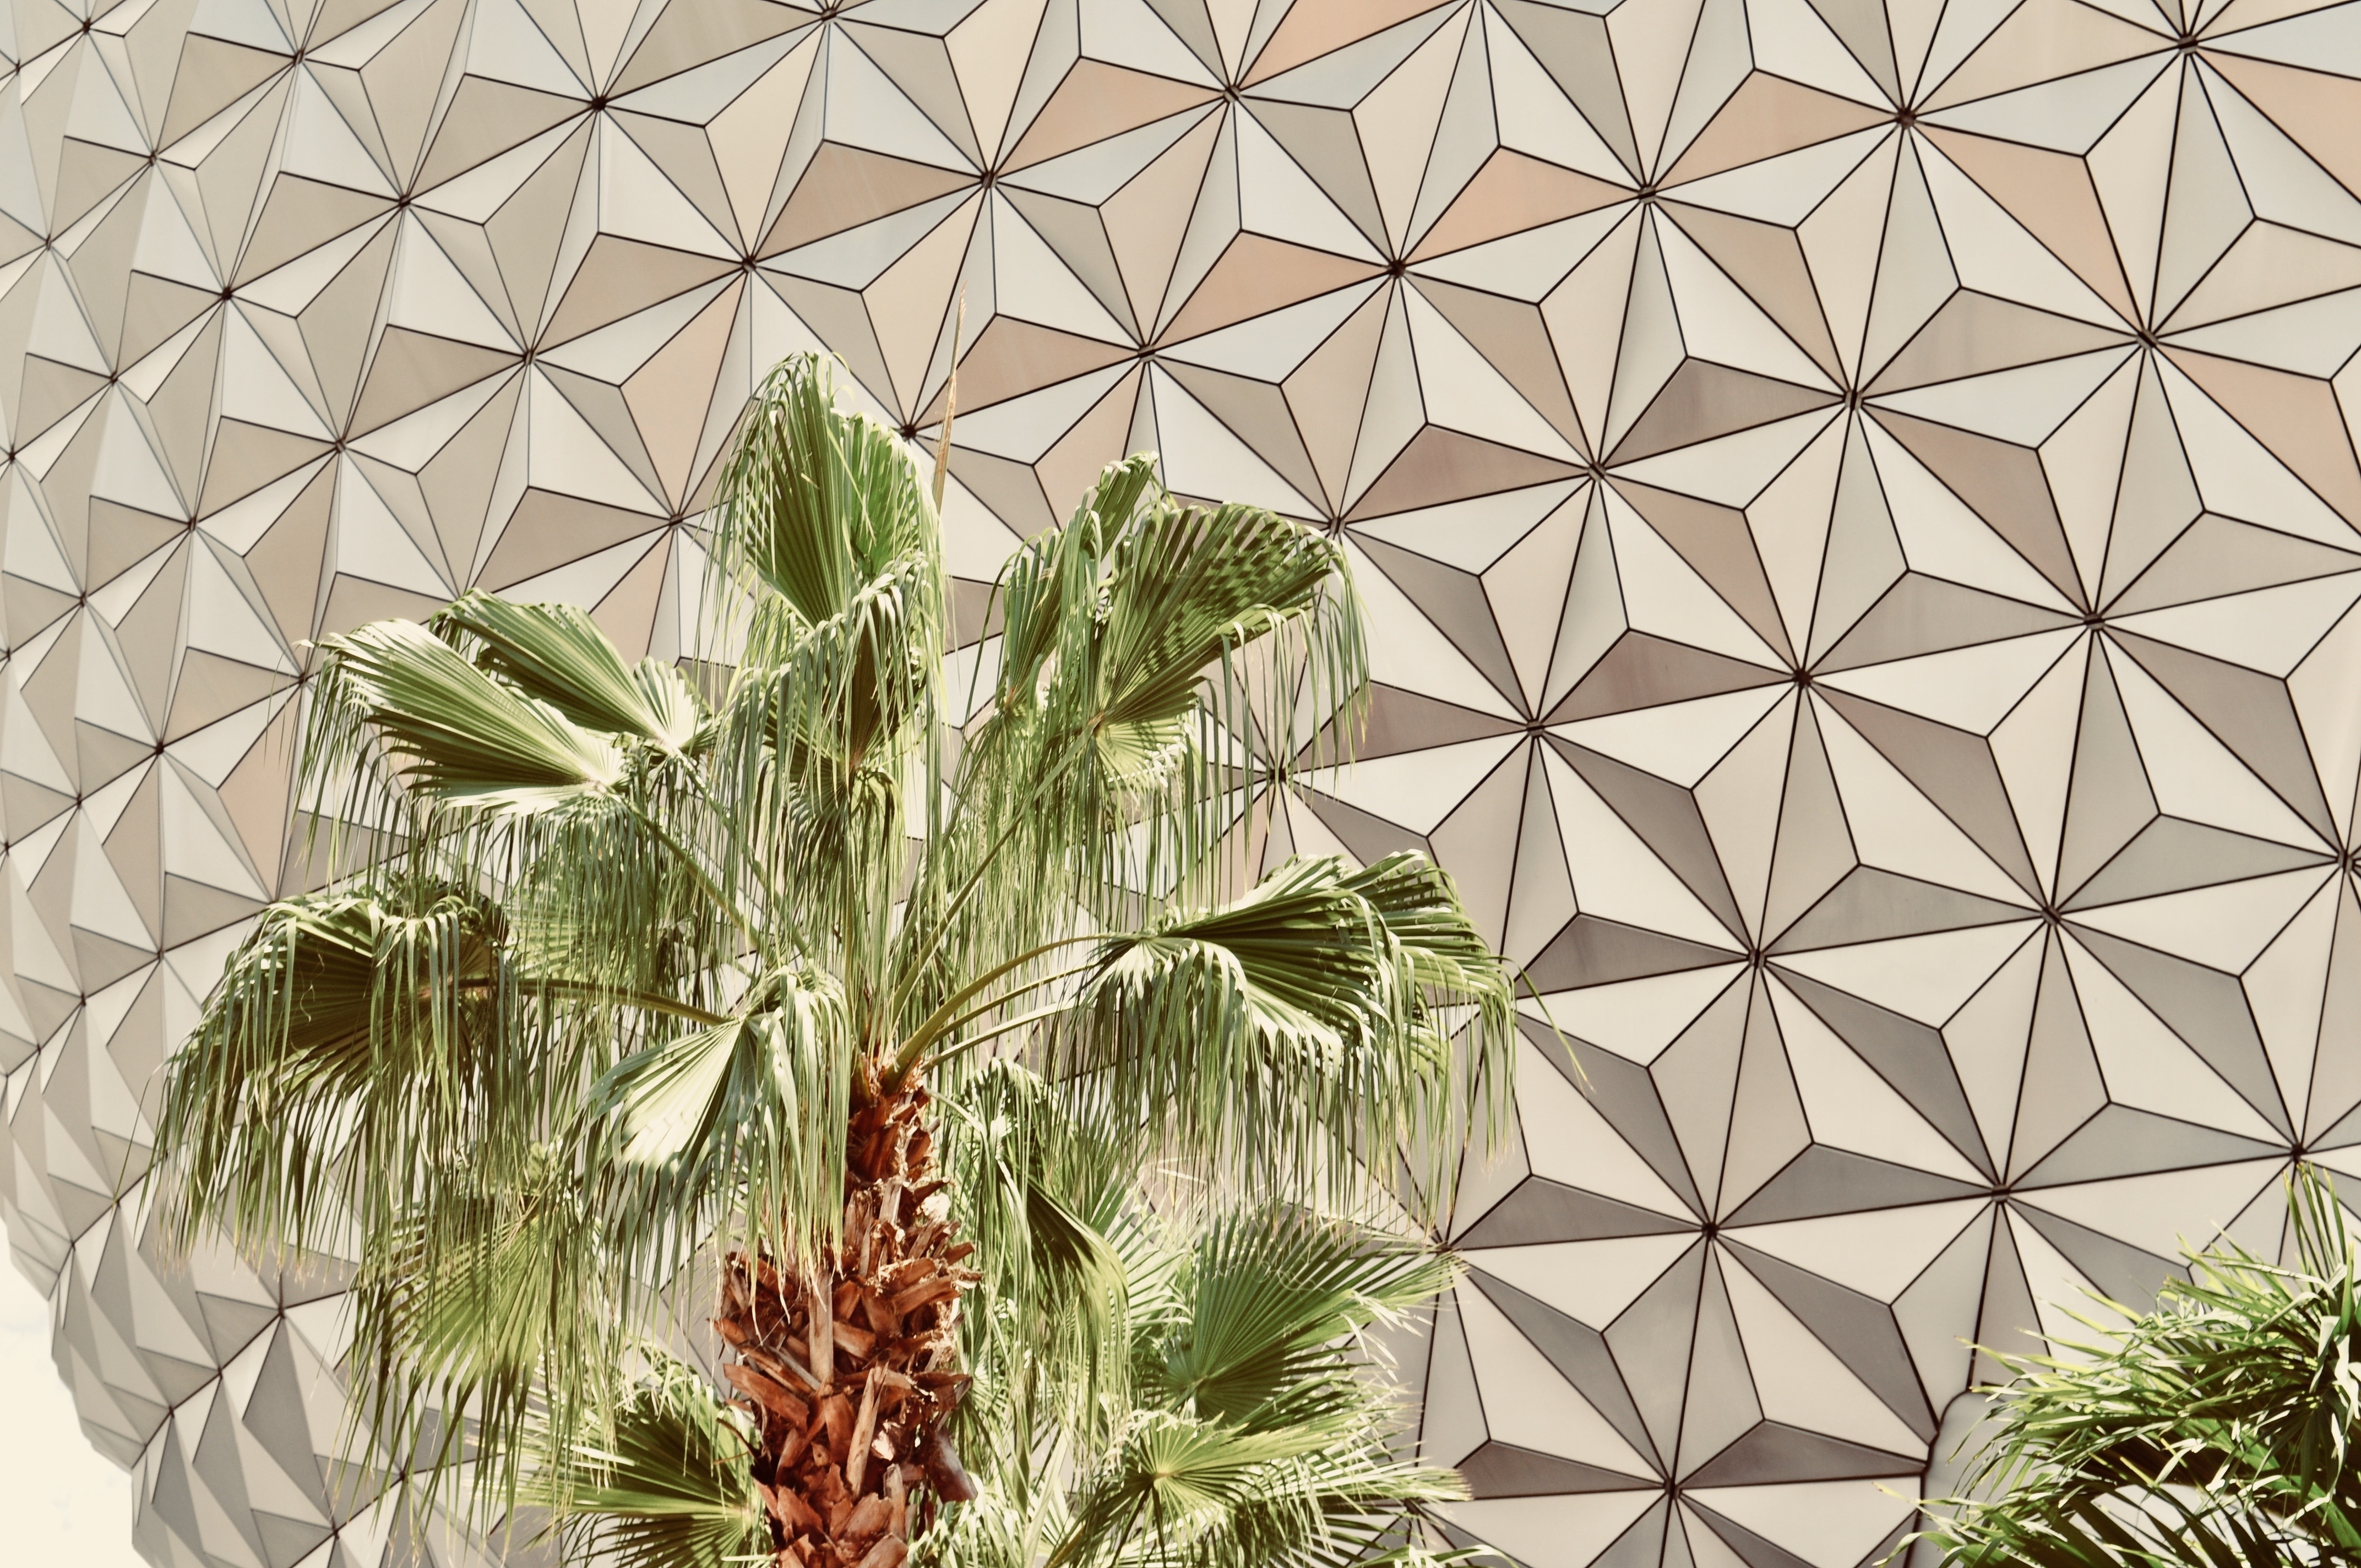 2018-07-01 - Epcot Day 2 pt 1